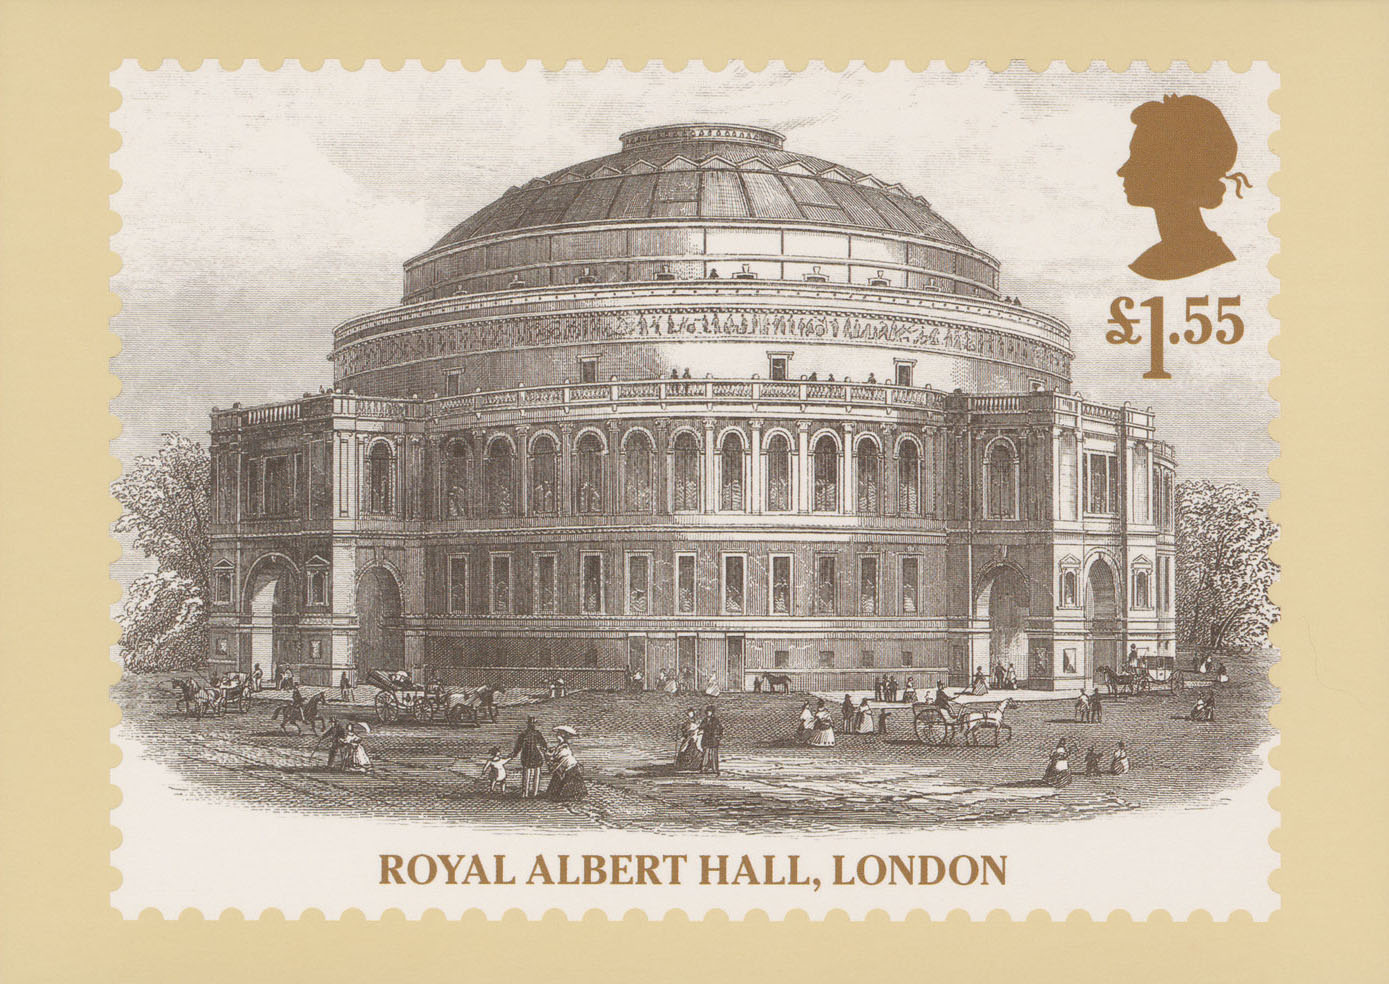 This postcard features an illustration of the Royal Albert Hall with Victorians walking around the outside.